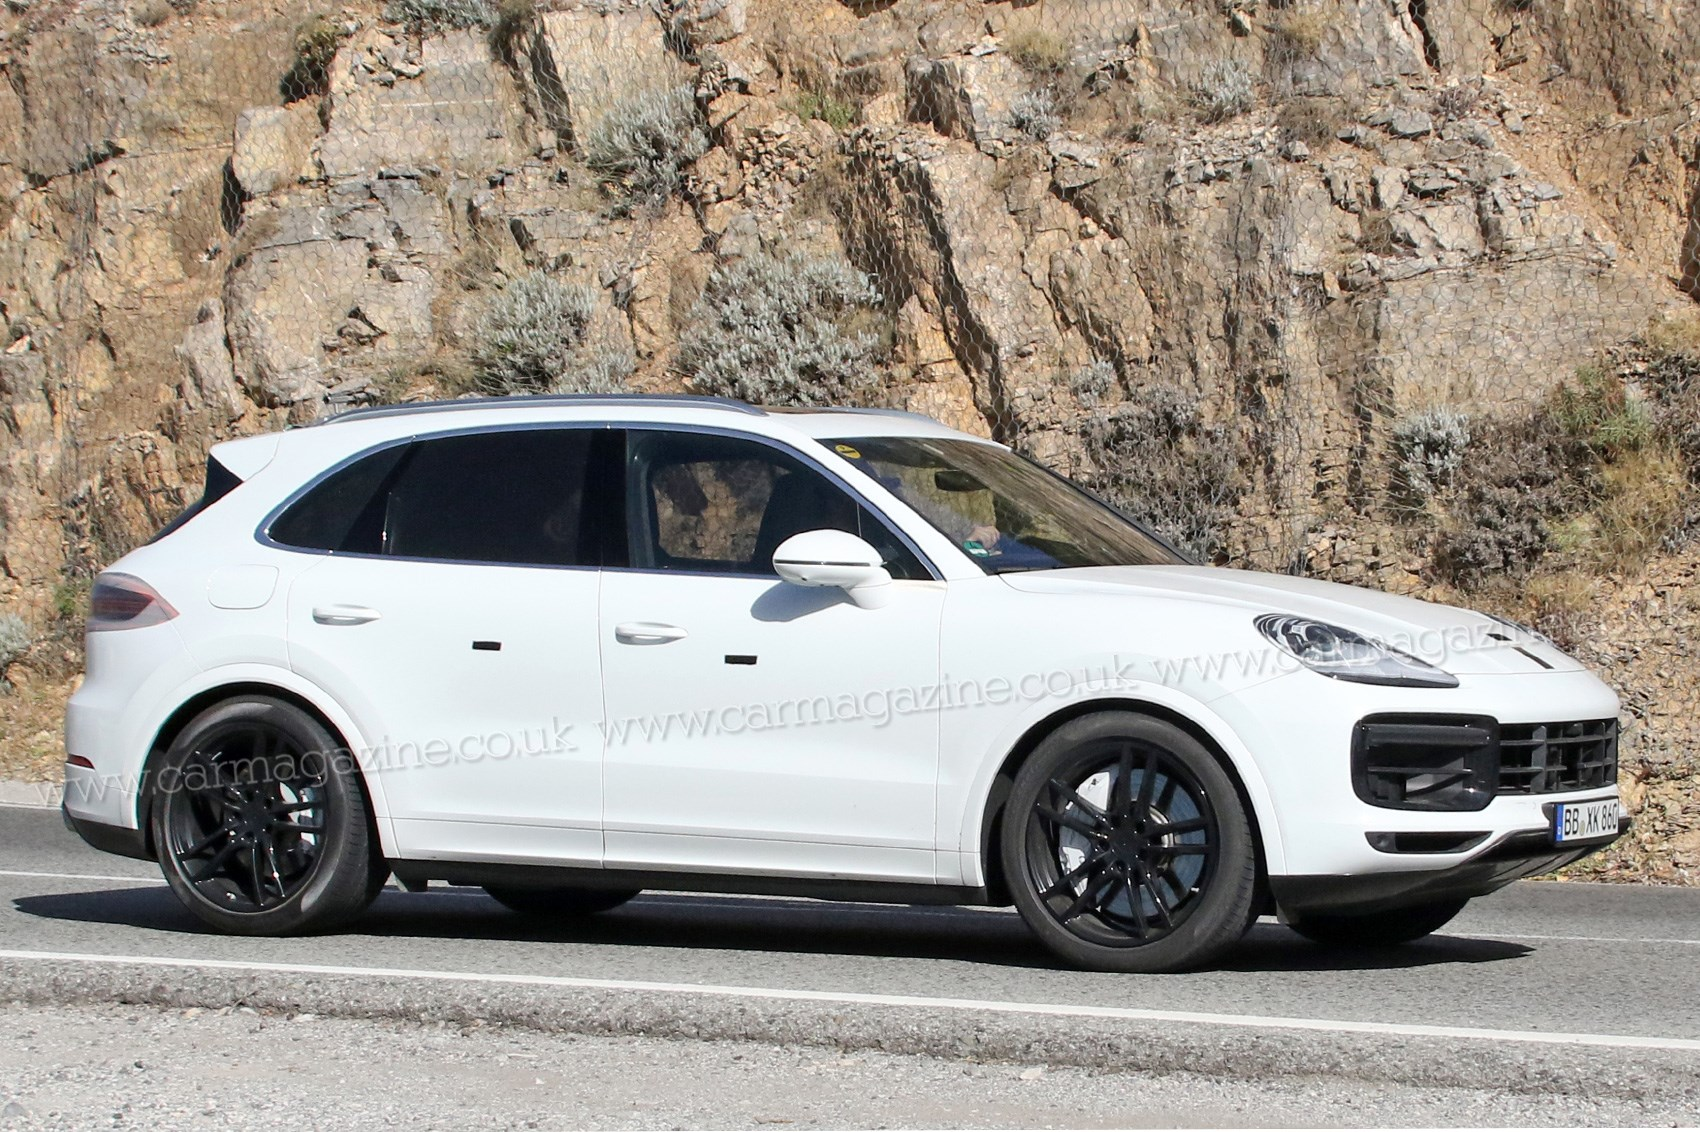 New 2017 Porsche Cayenne: what to expect | CAR Magazine